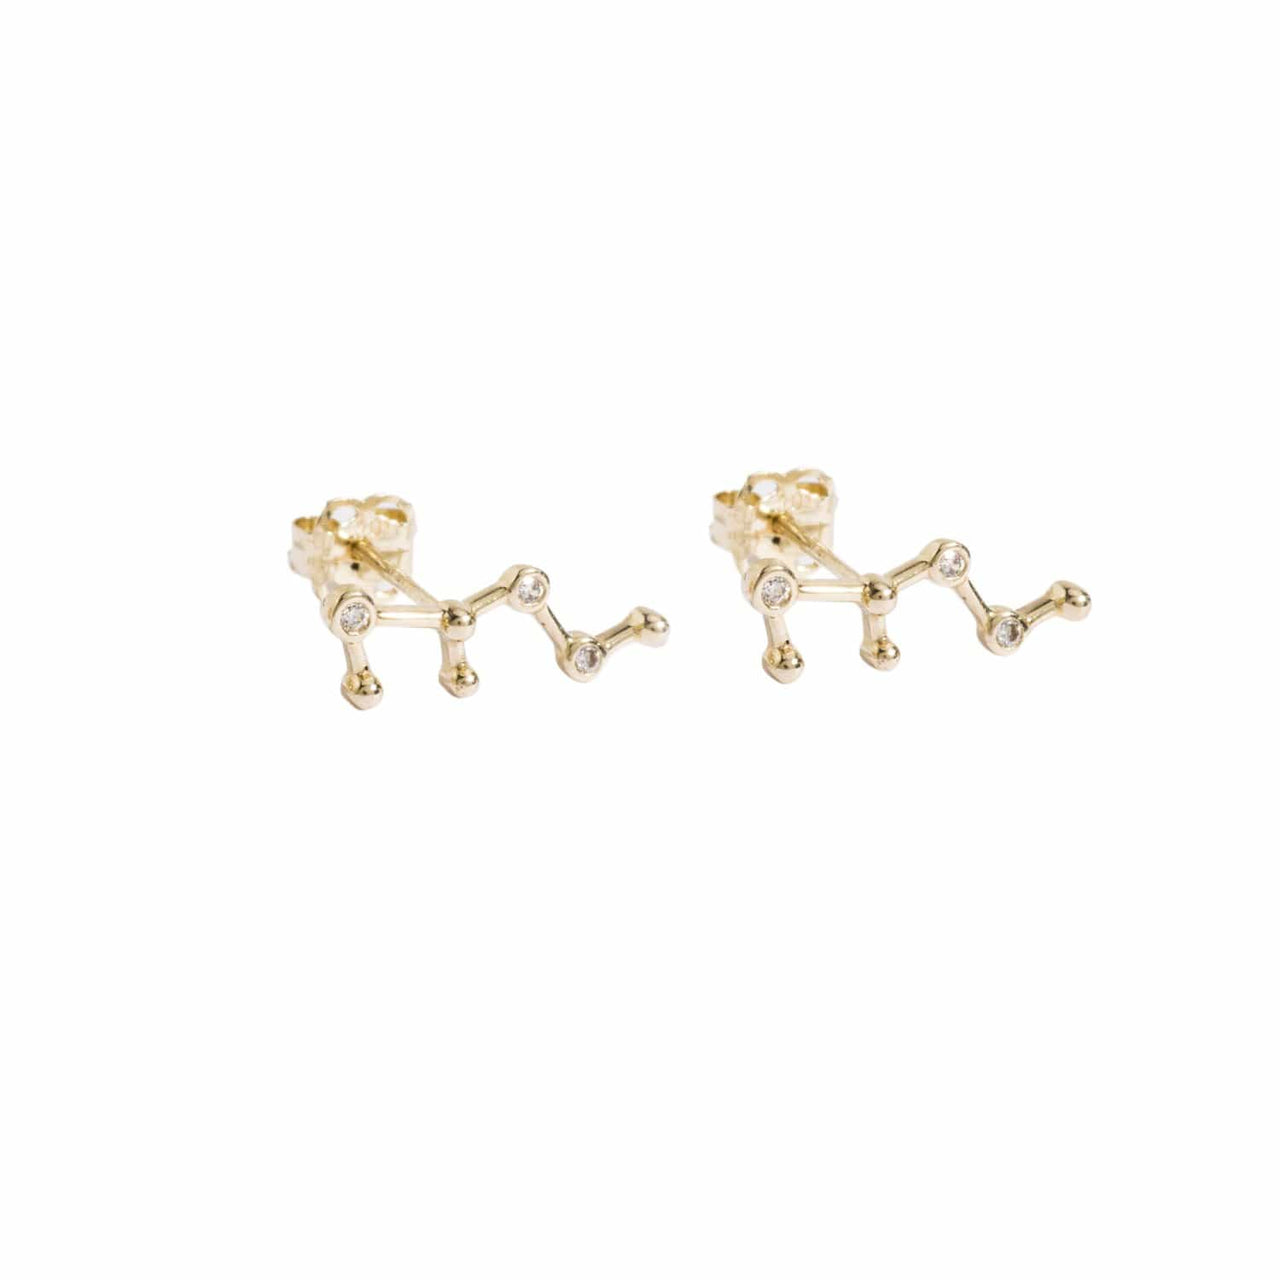 AMARILO Earrings Constellation Studs